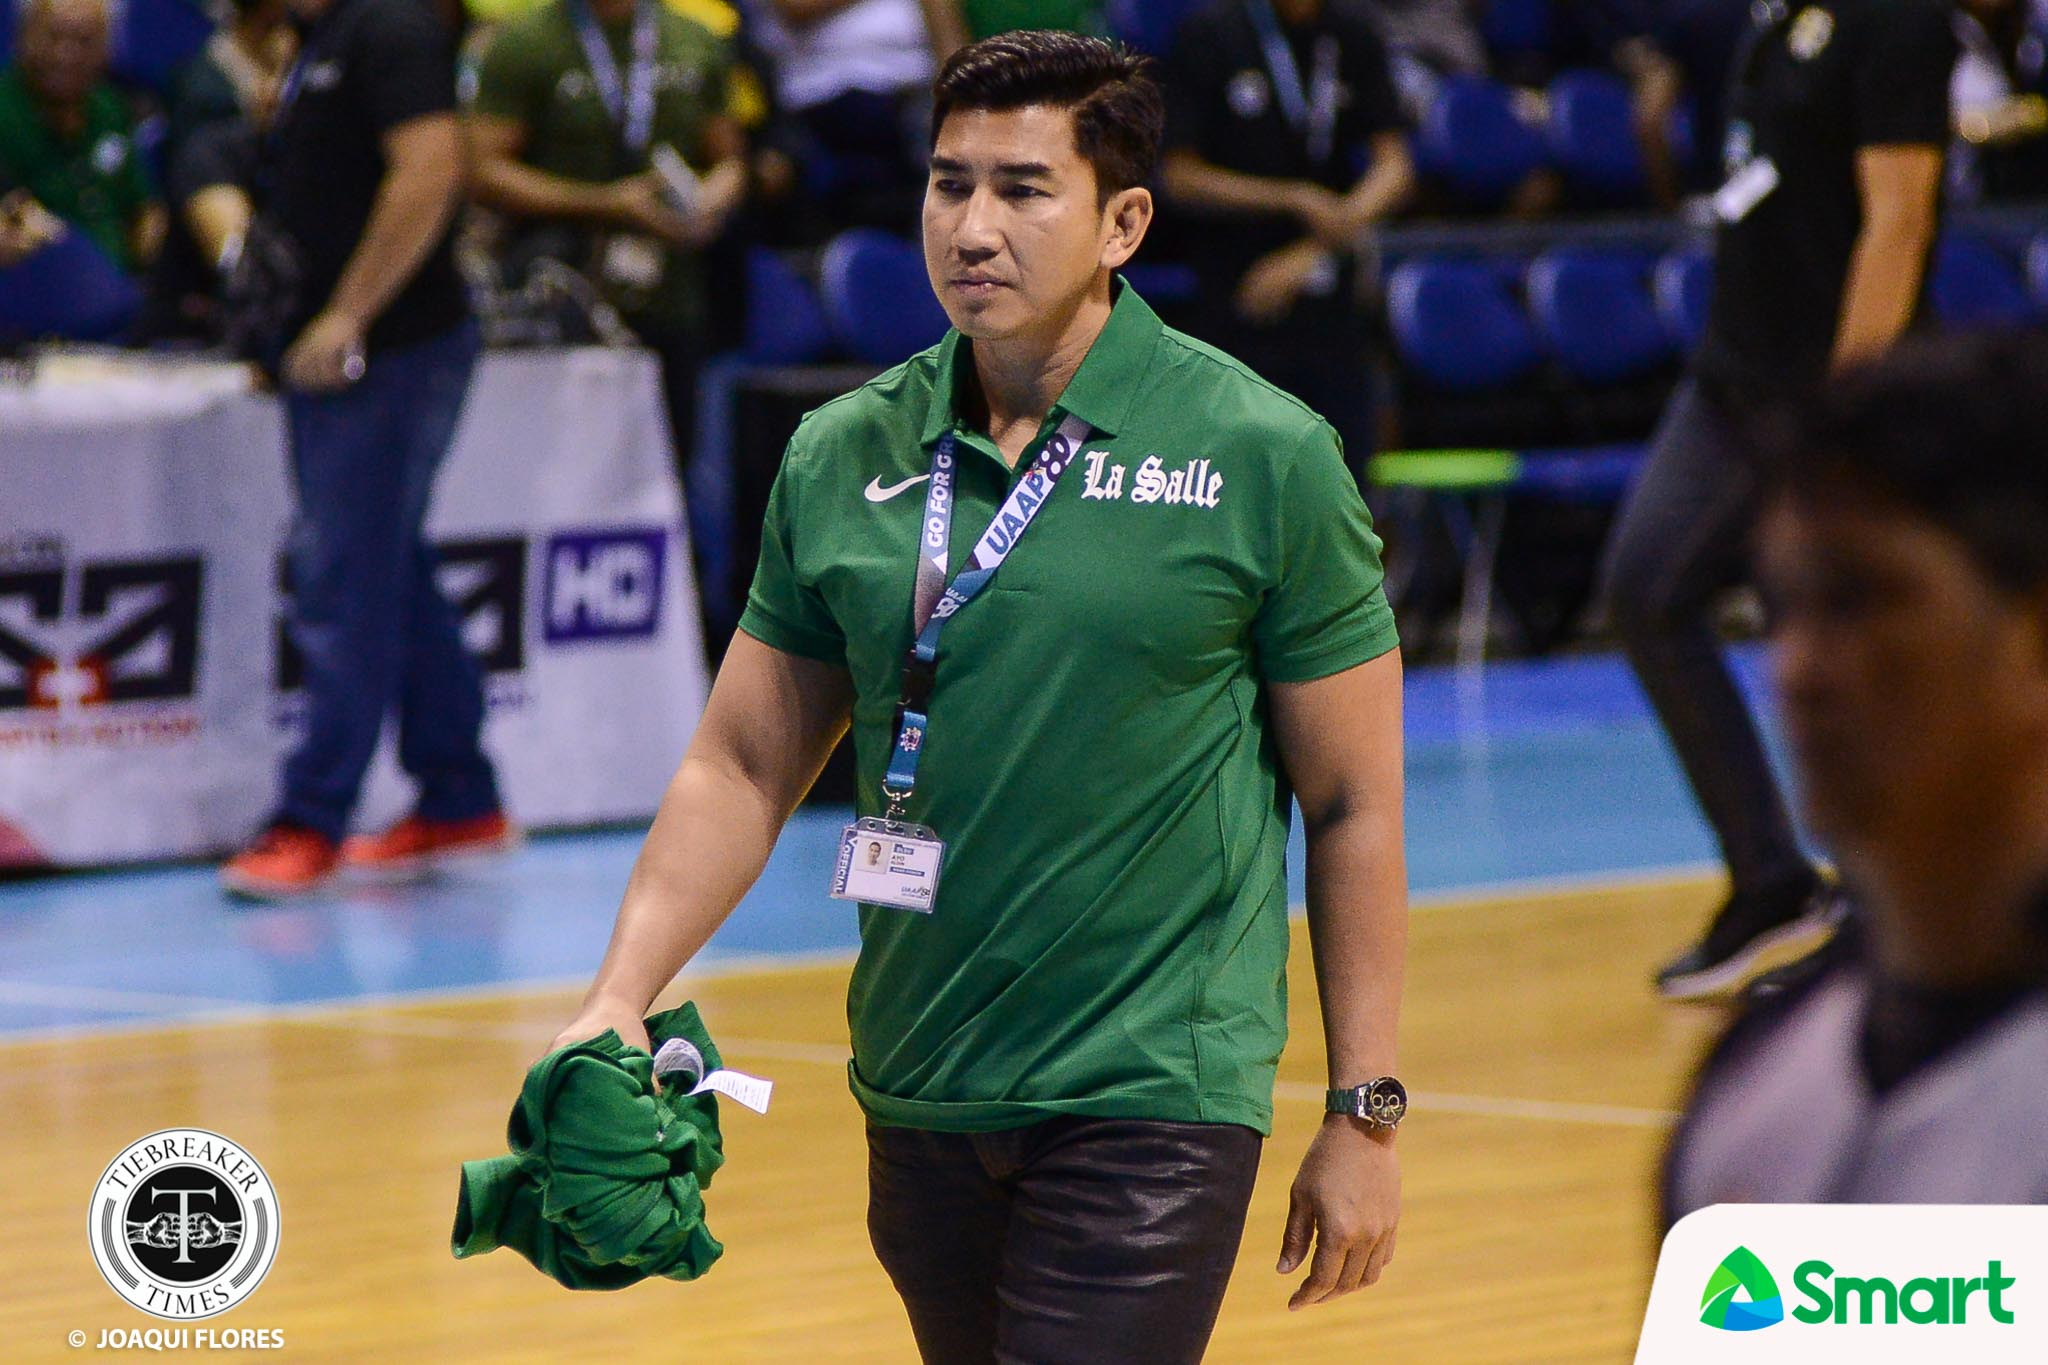 La Salle officially names Louie Gonzalez as new Green Archers coach — UAAP""